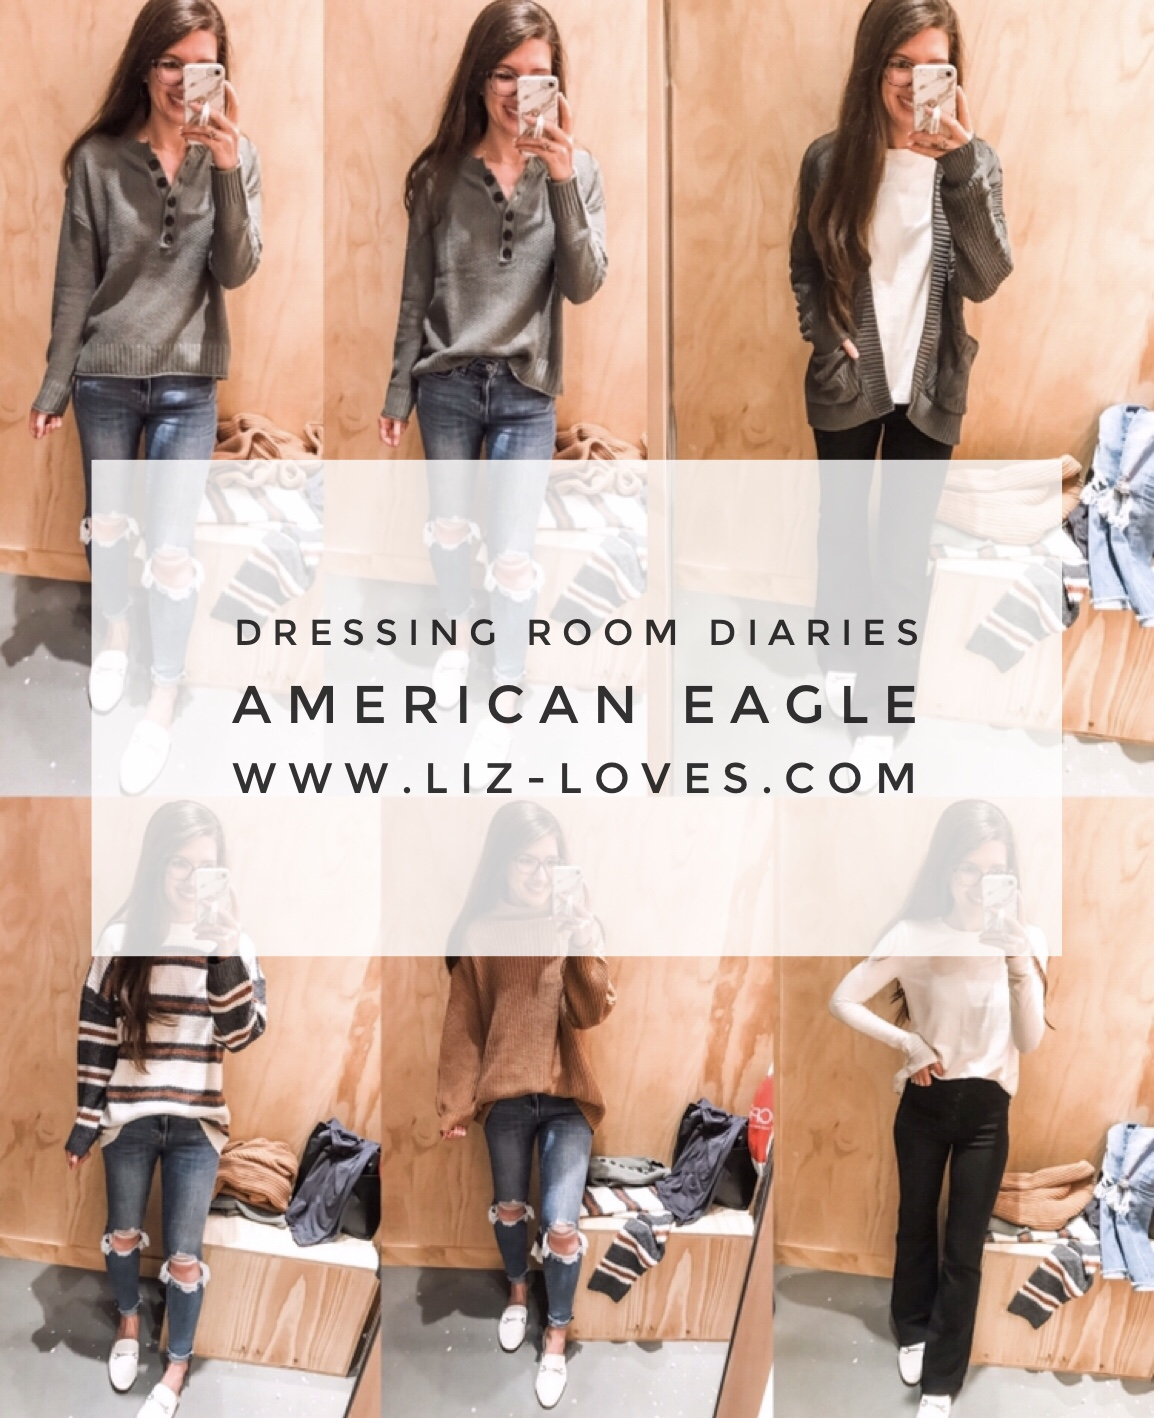 Dressing Room Diaries: American Eagle